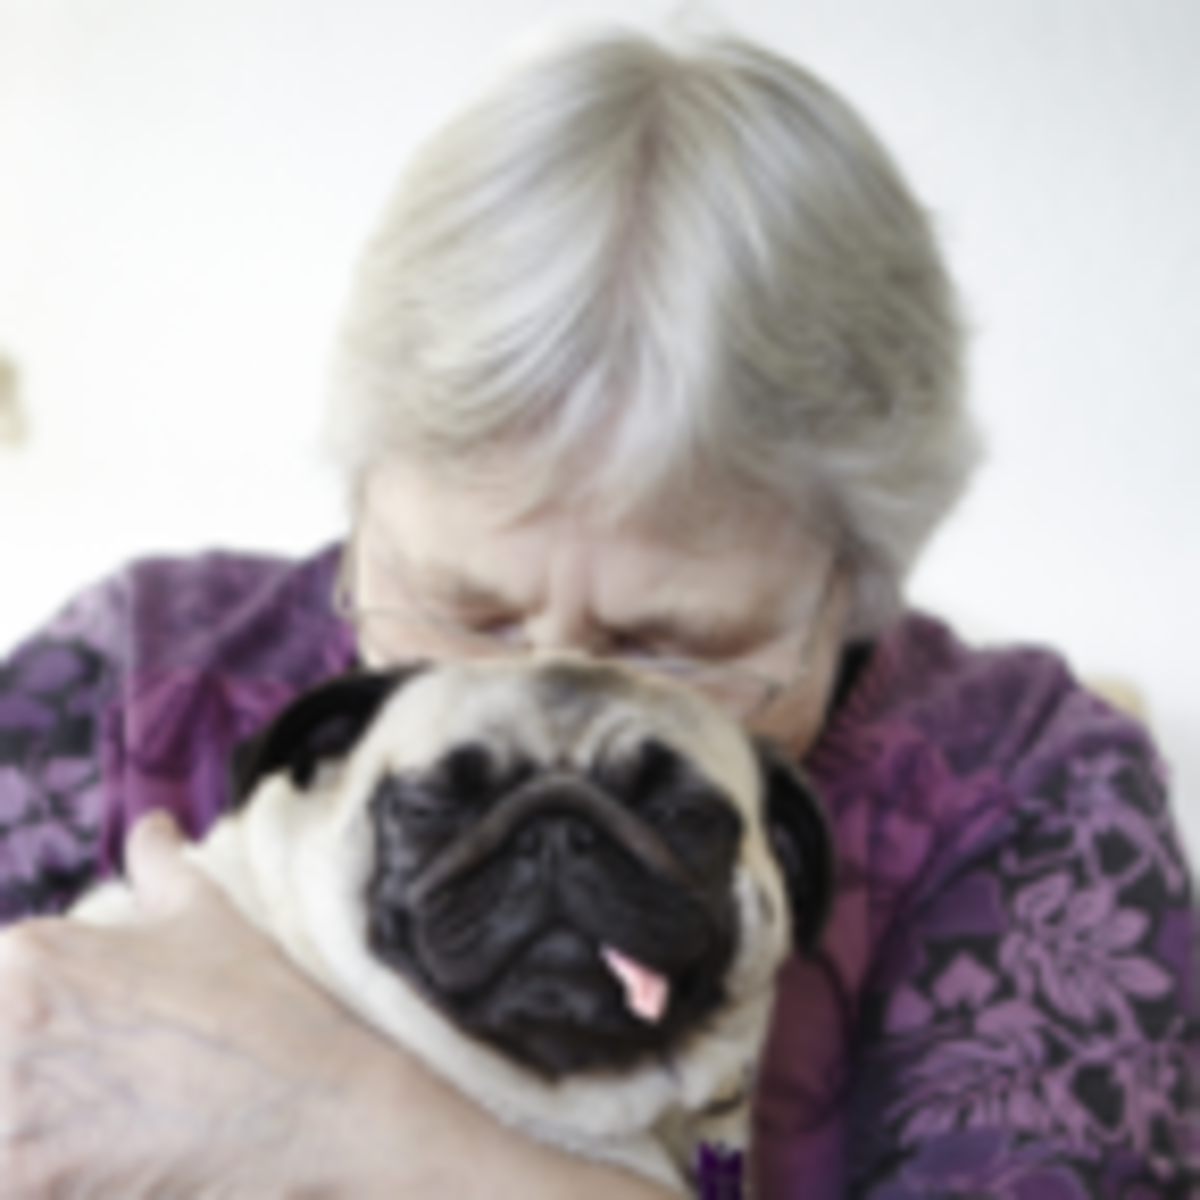 Therapy Dogs or Robots for Nursing Home Residents? | Psychology